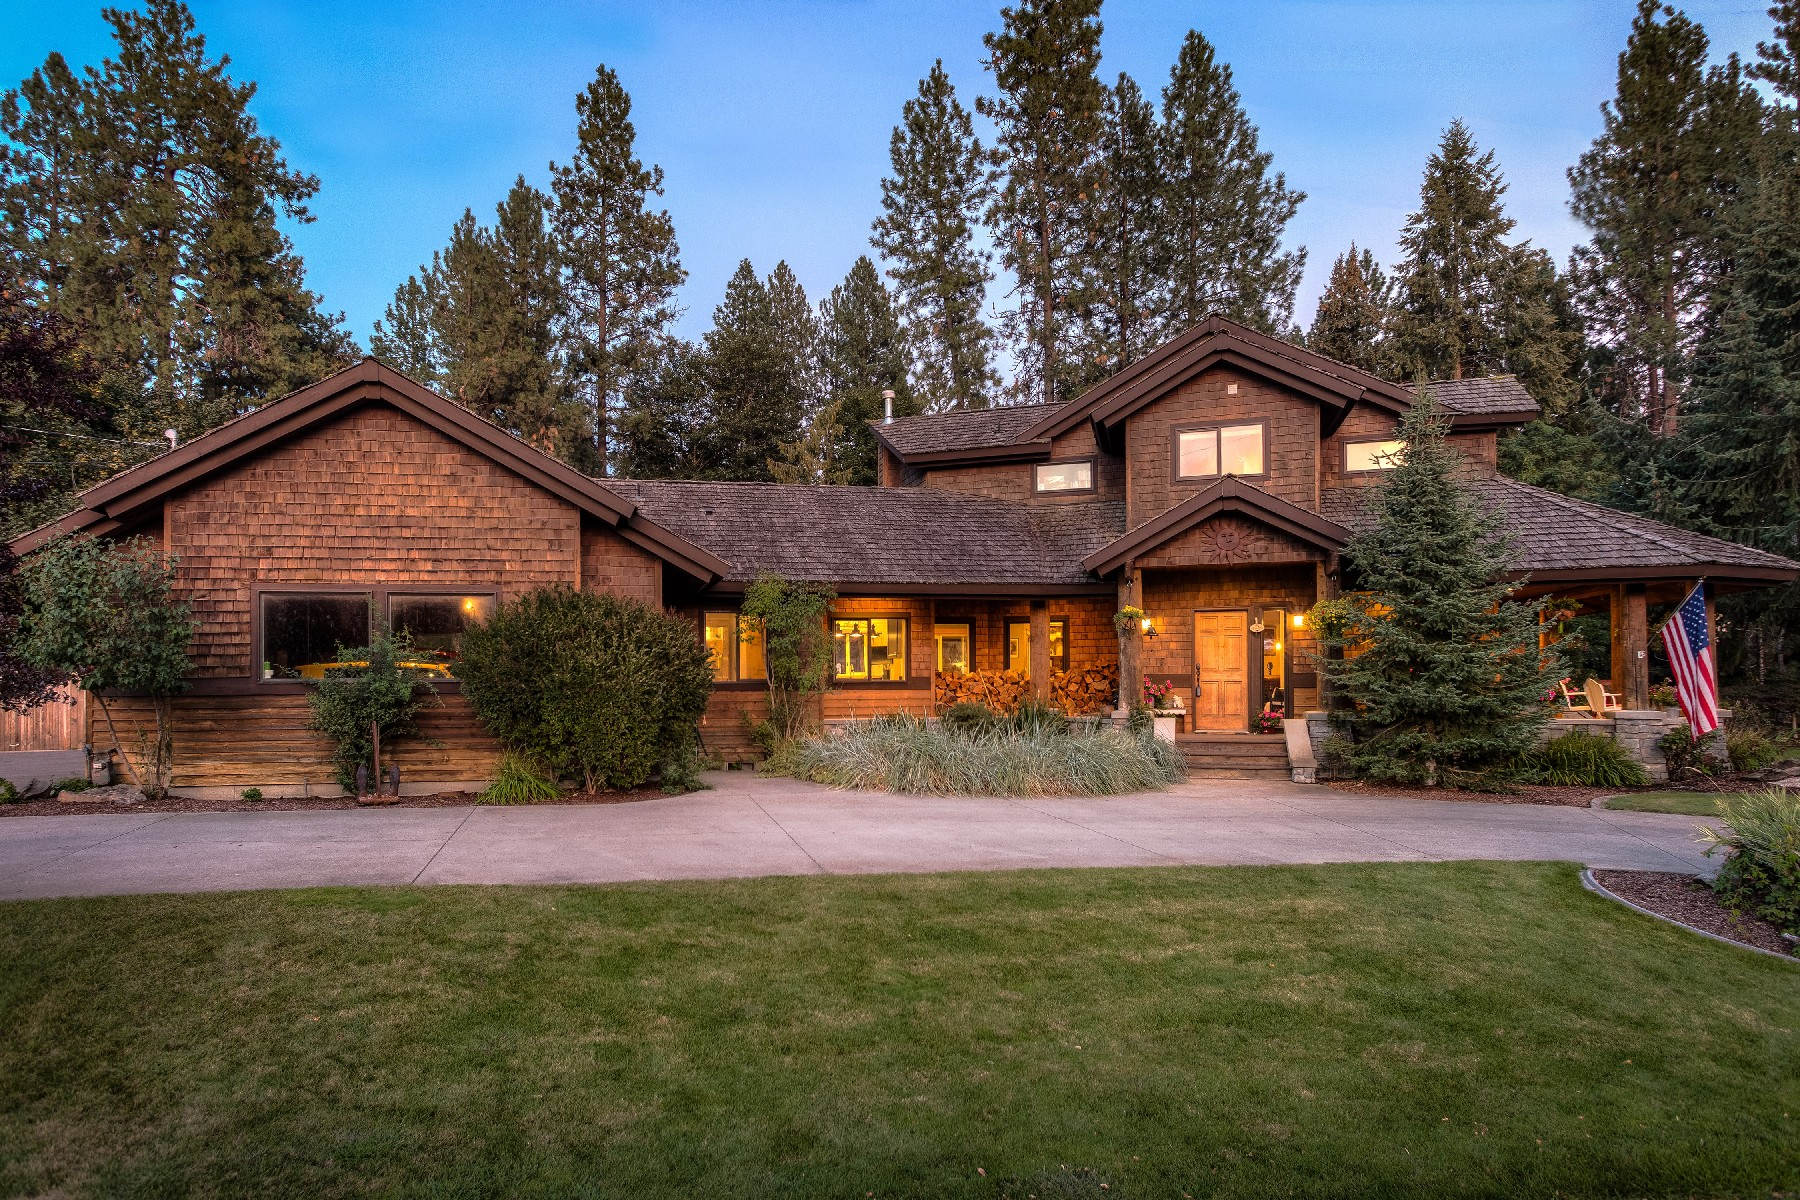 Single Family Homes for Sale at Country Club Custom Log beauty 10364 N Morris Rd Hayden Lake, Idaho 83835 United States